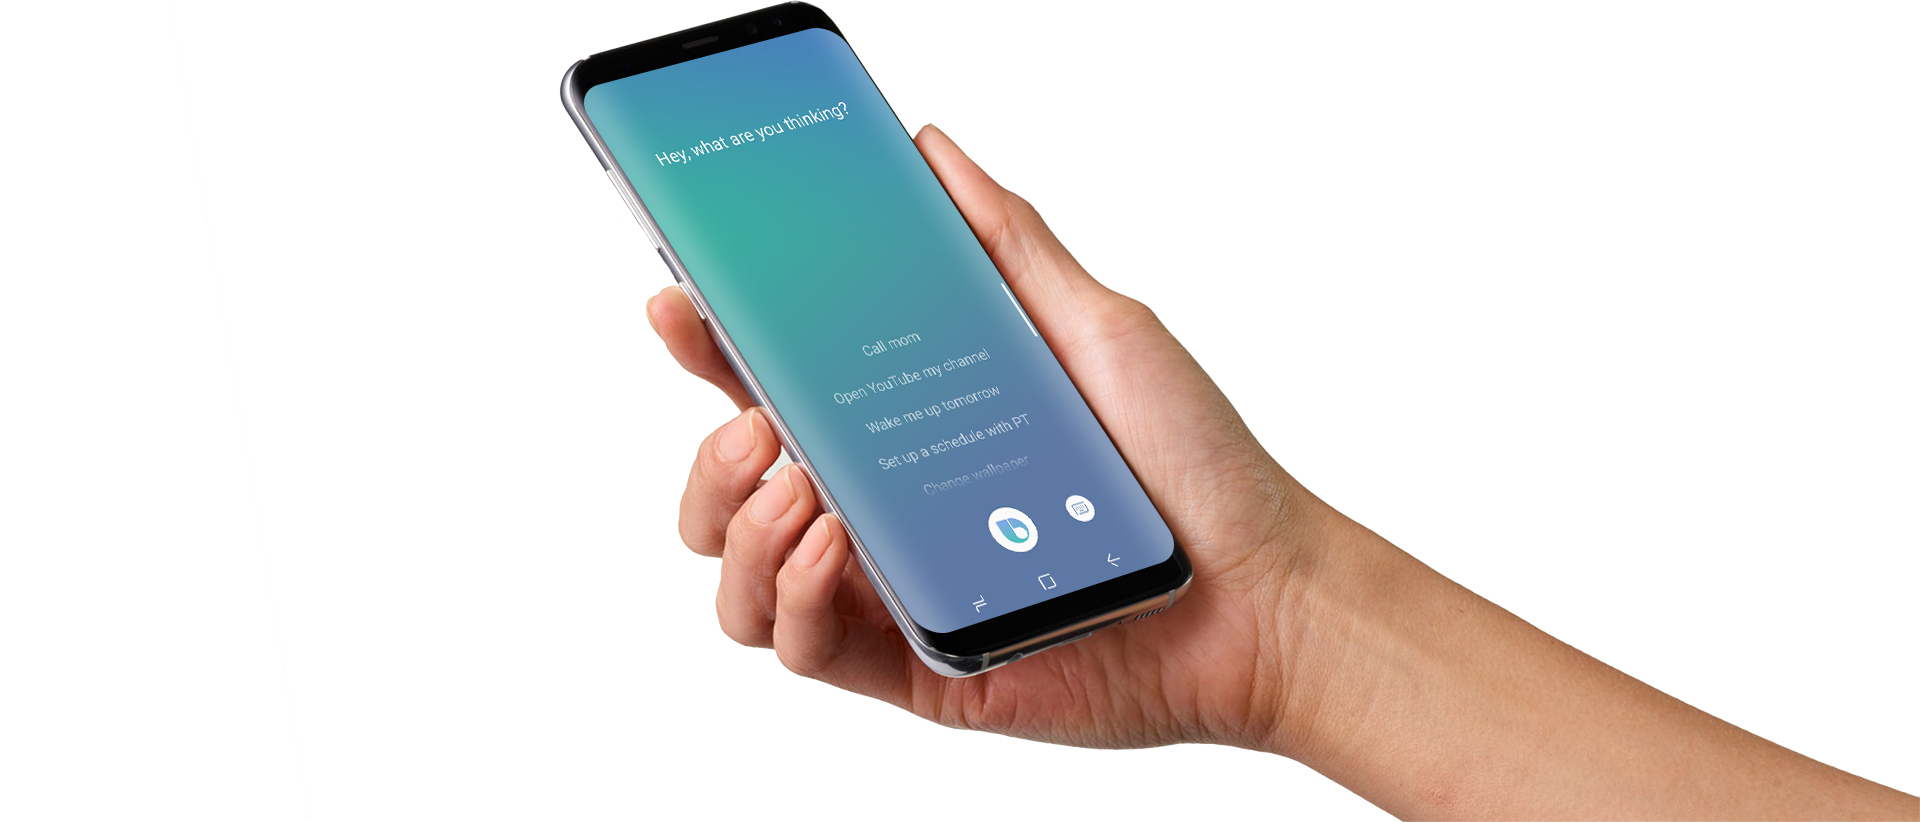 Some users experiencing a broken Bixby button on the Galaxy S8